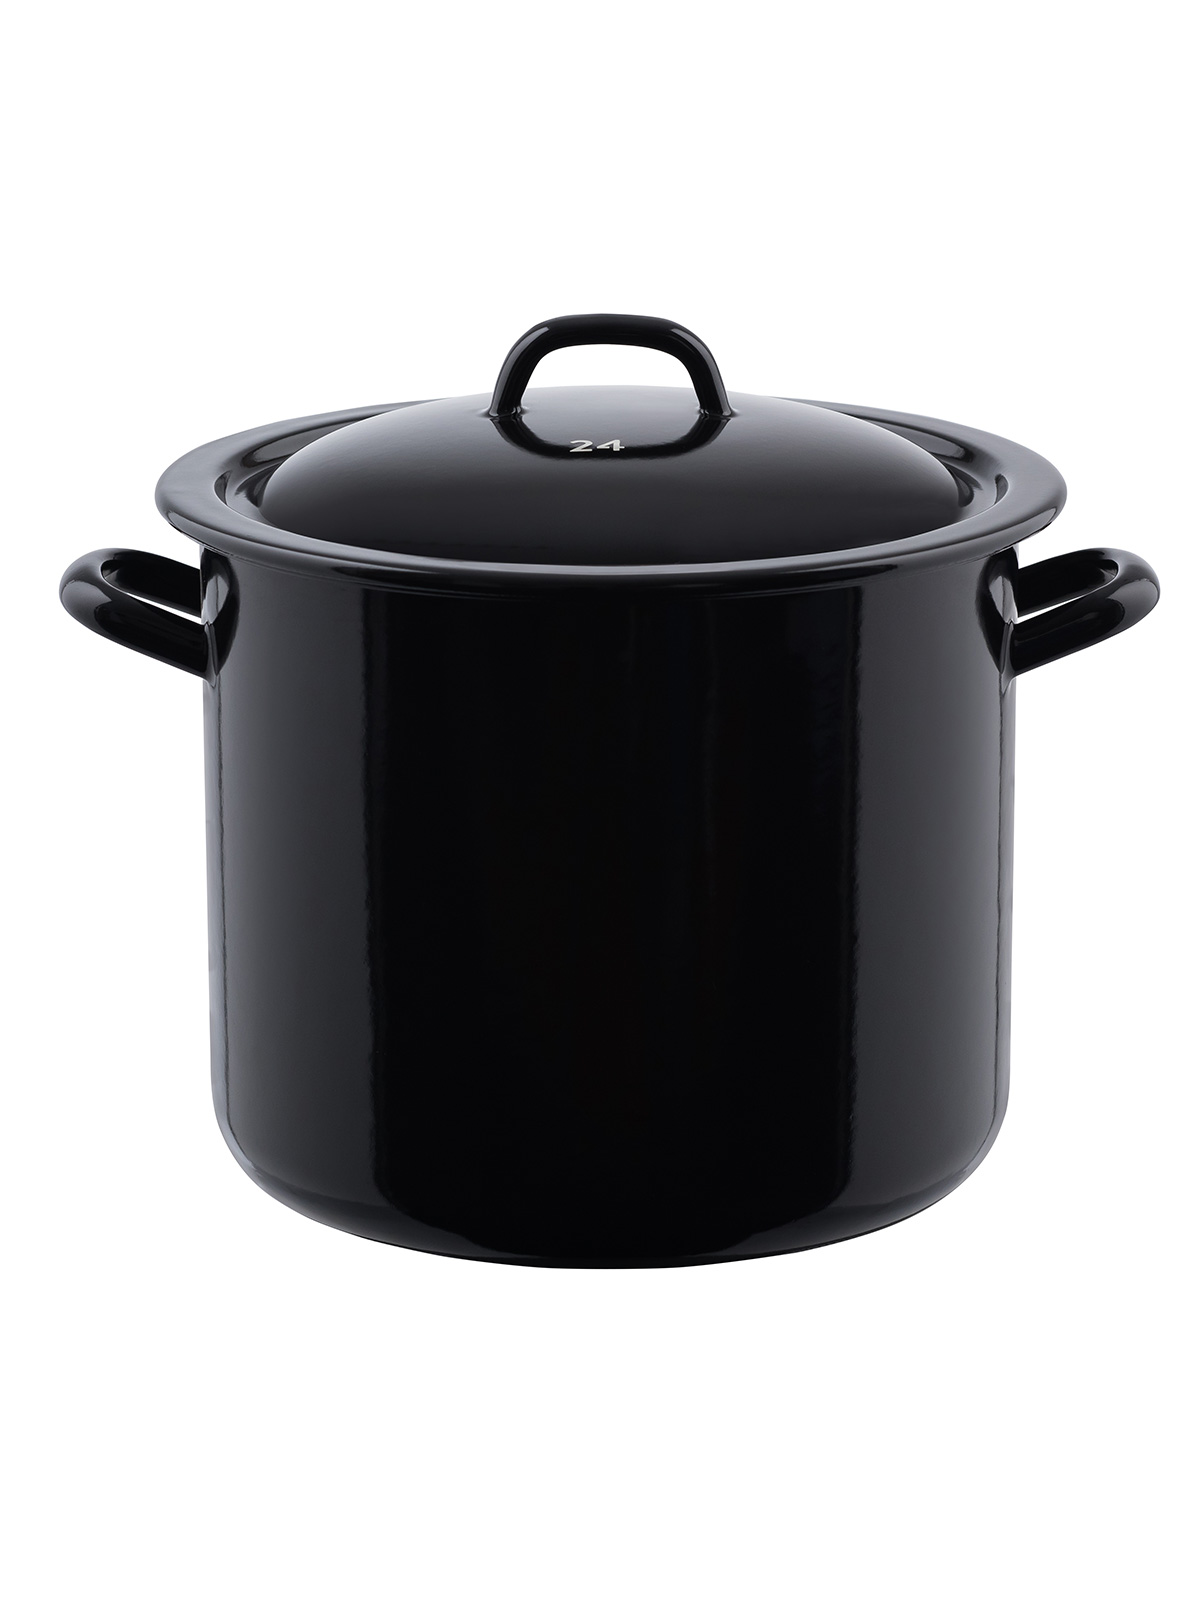 Classic high casserol with cover, black/white 20 liter